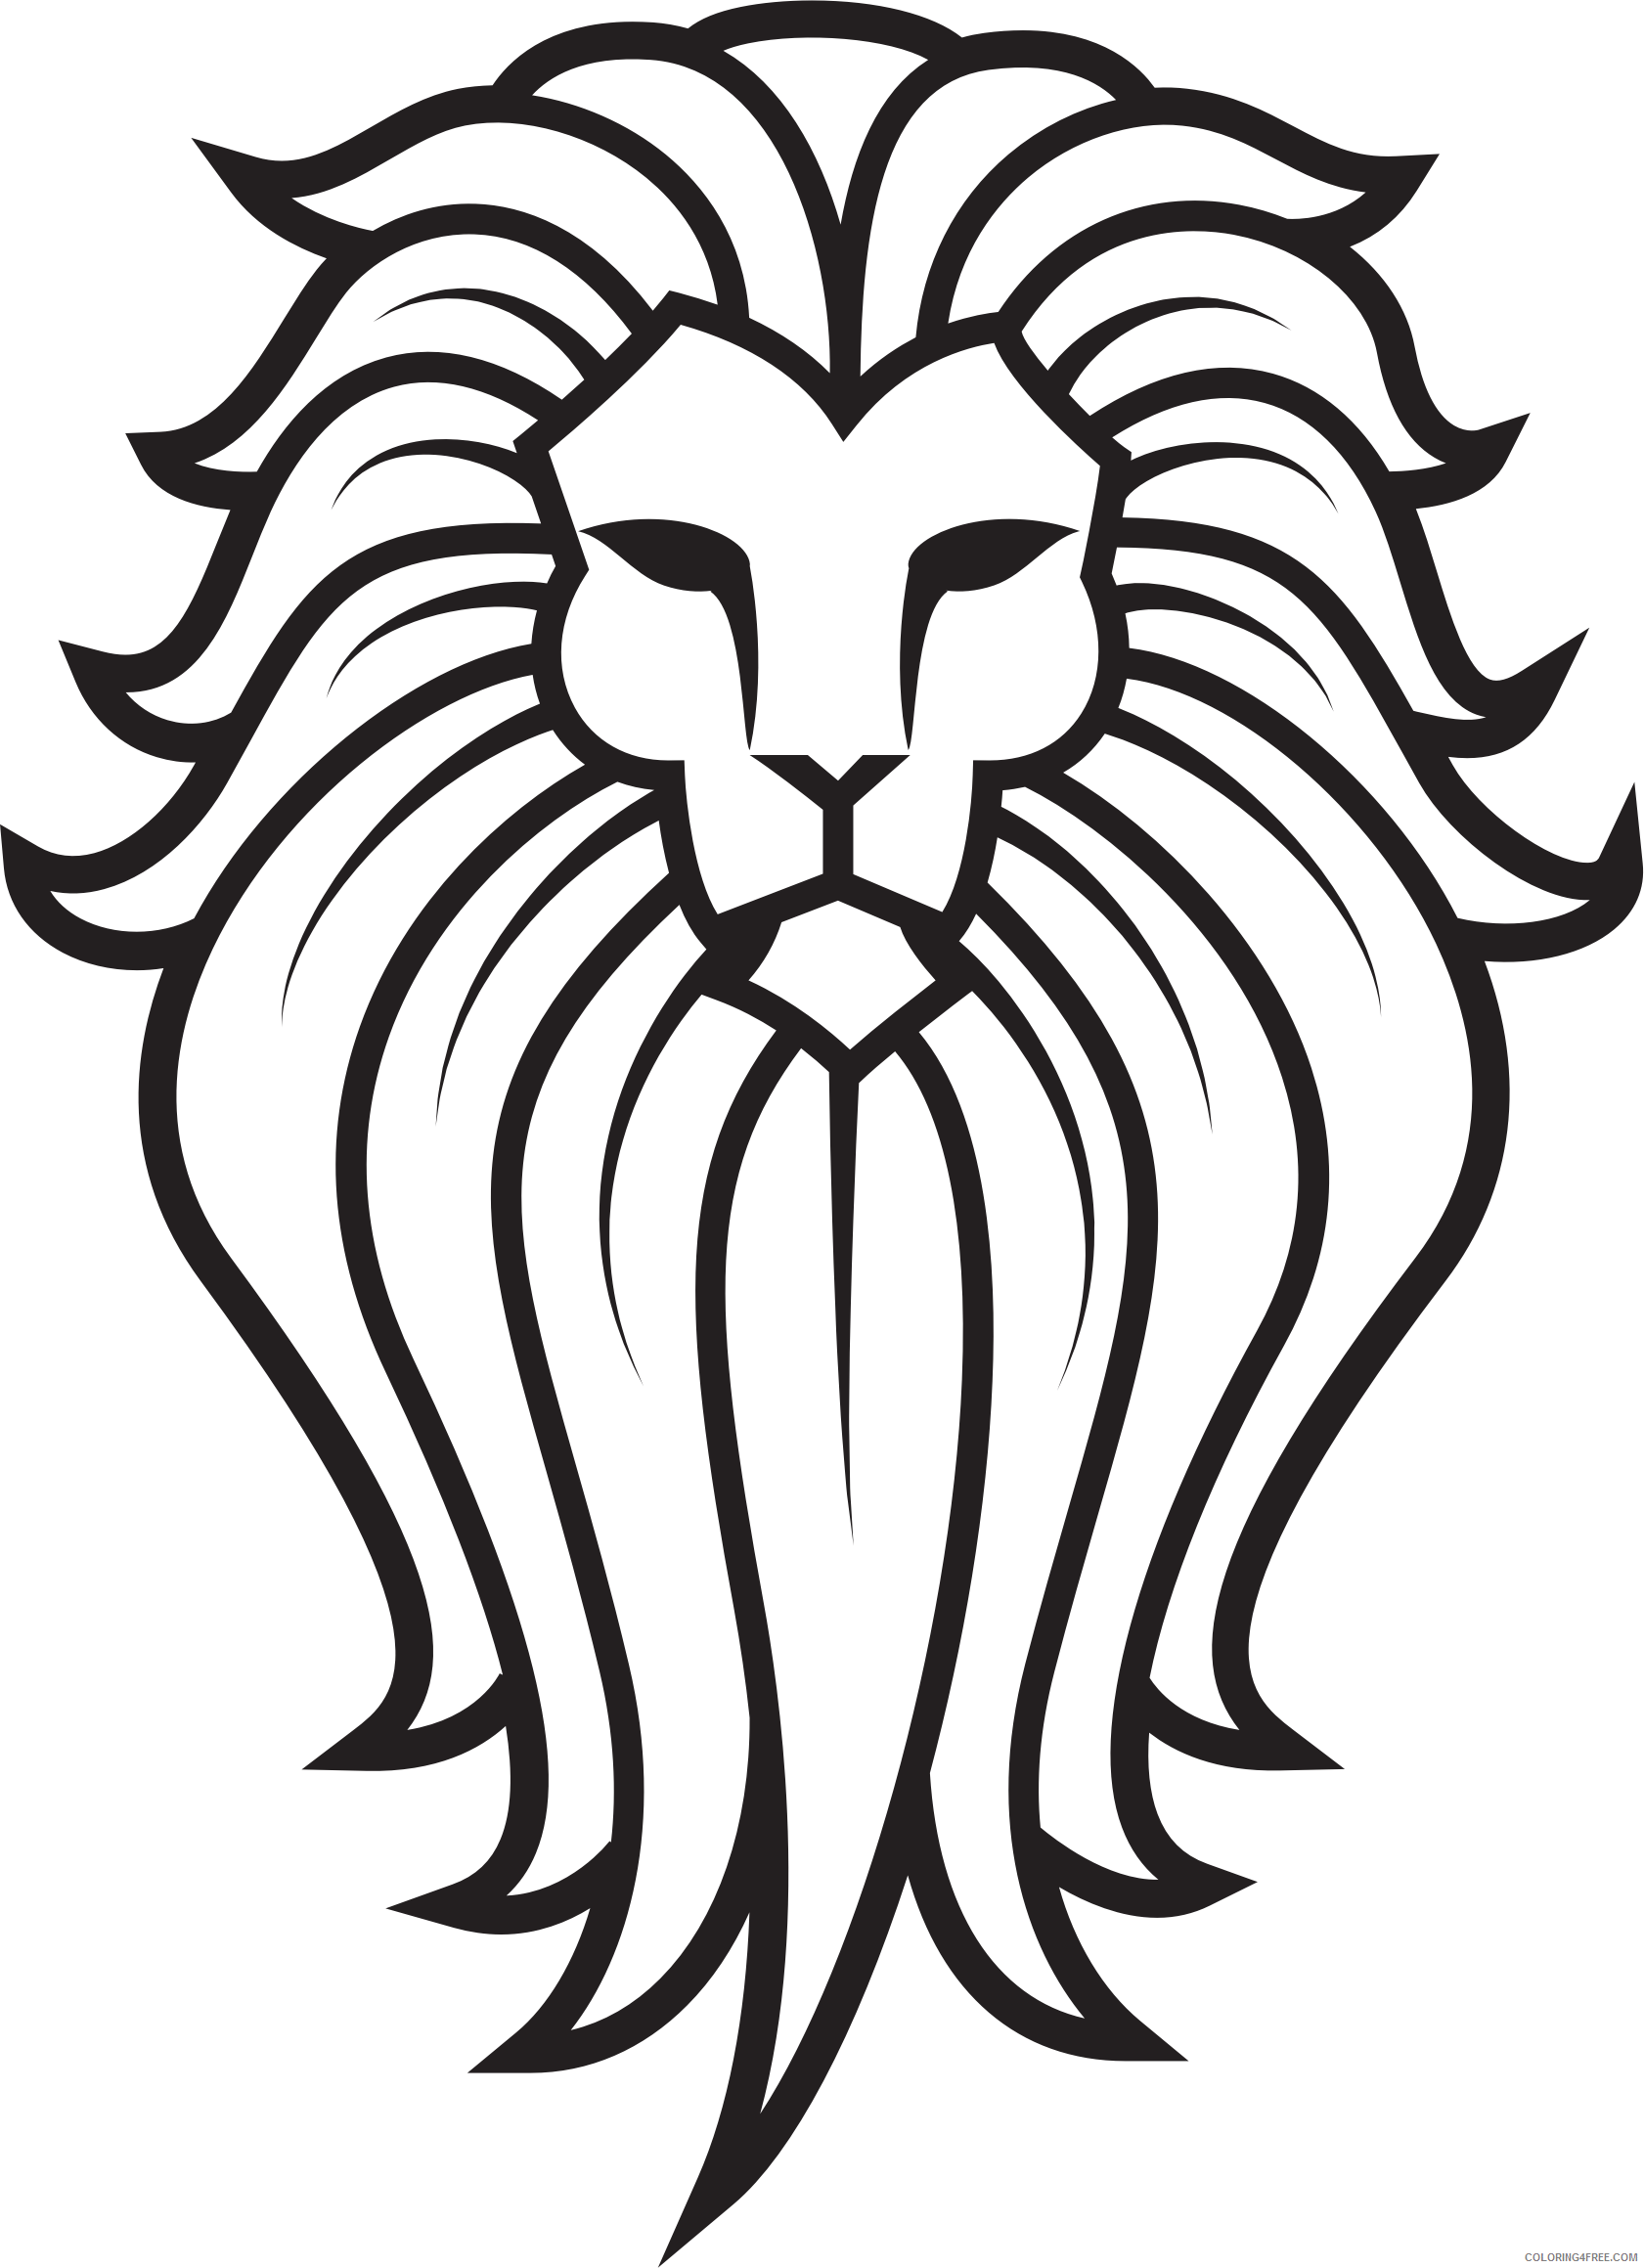 Lion Tattoo Coloring Pages lion face tattoo Printable Coloring4free